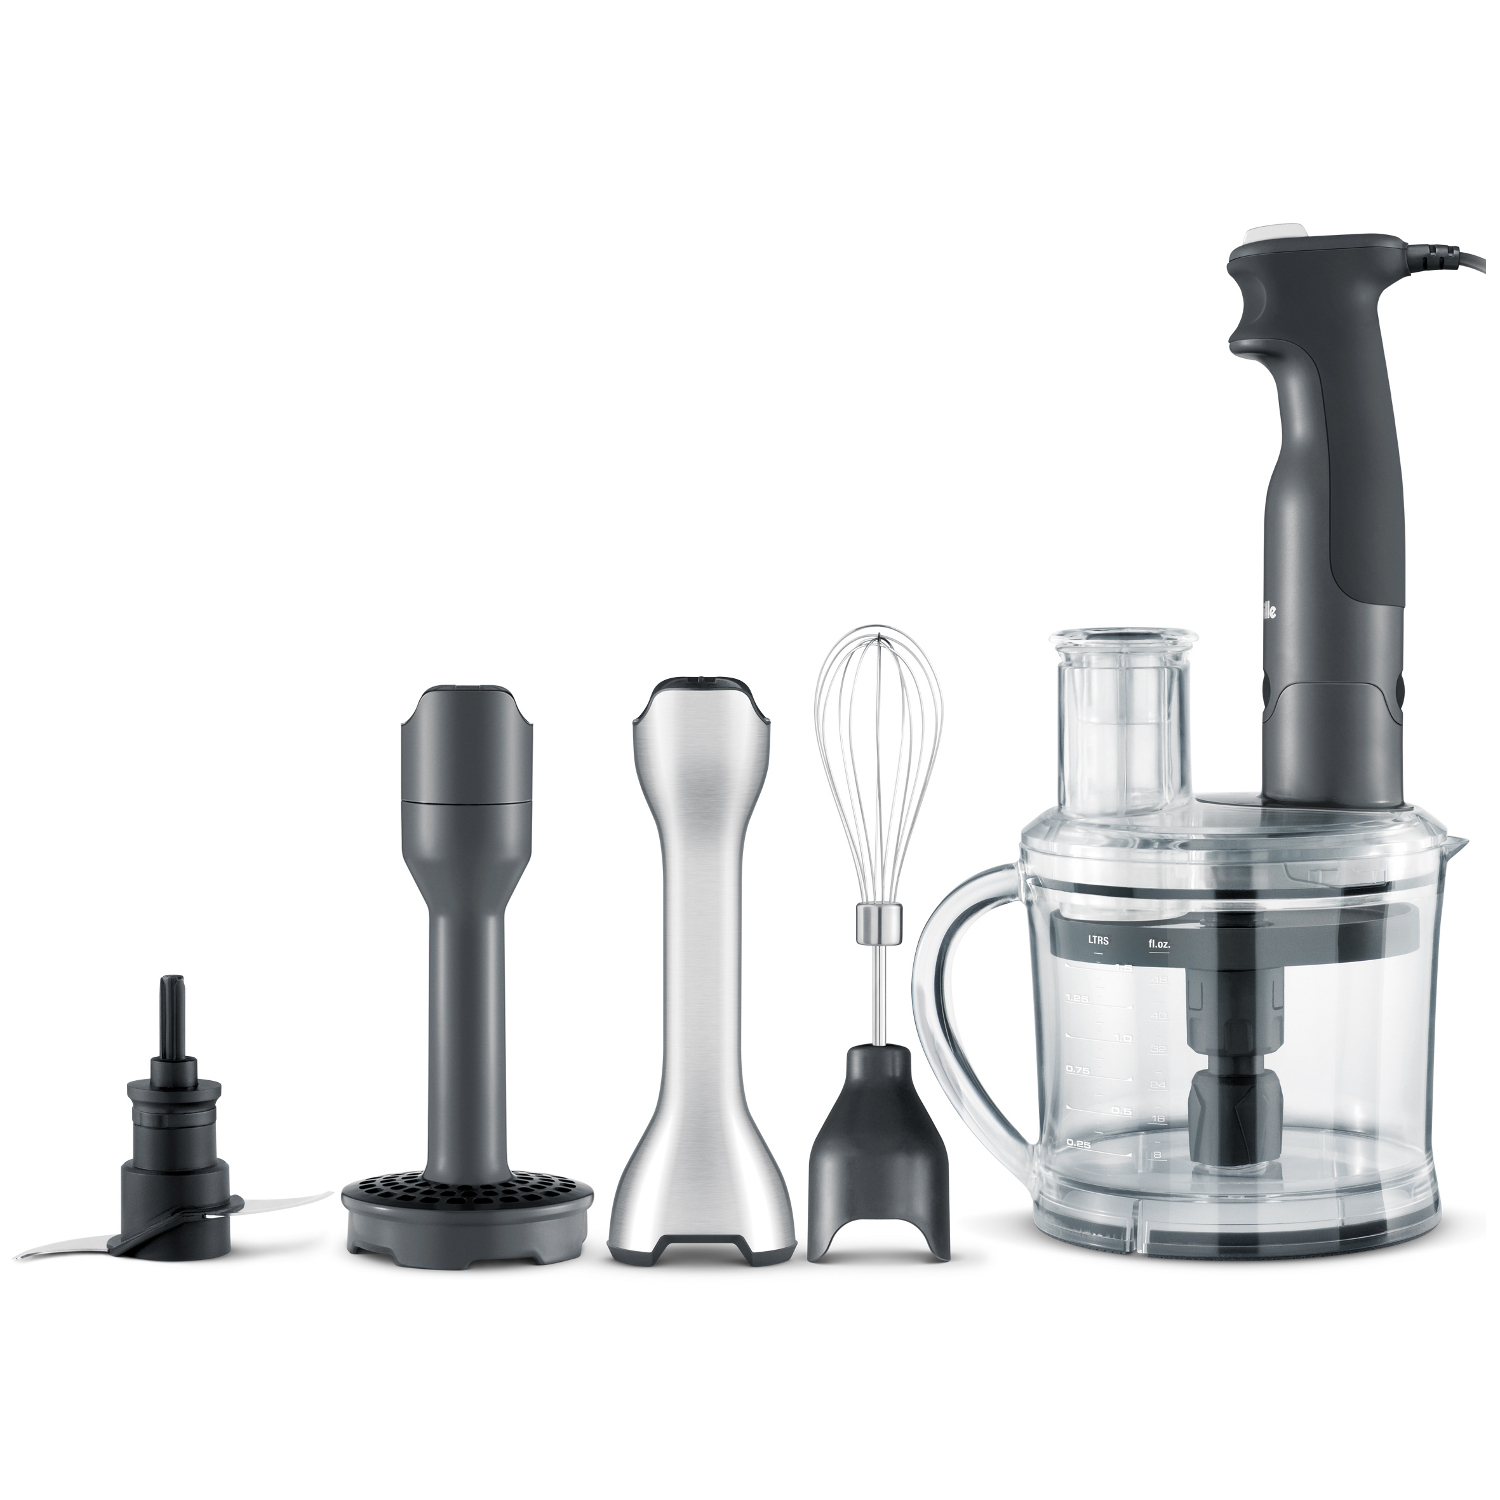 Breville BSB530XL Stainless Steel All In One Food Processor